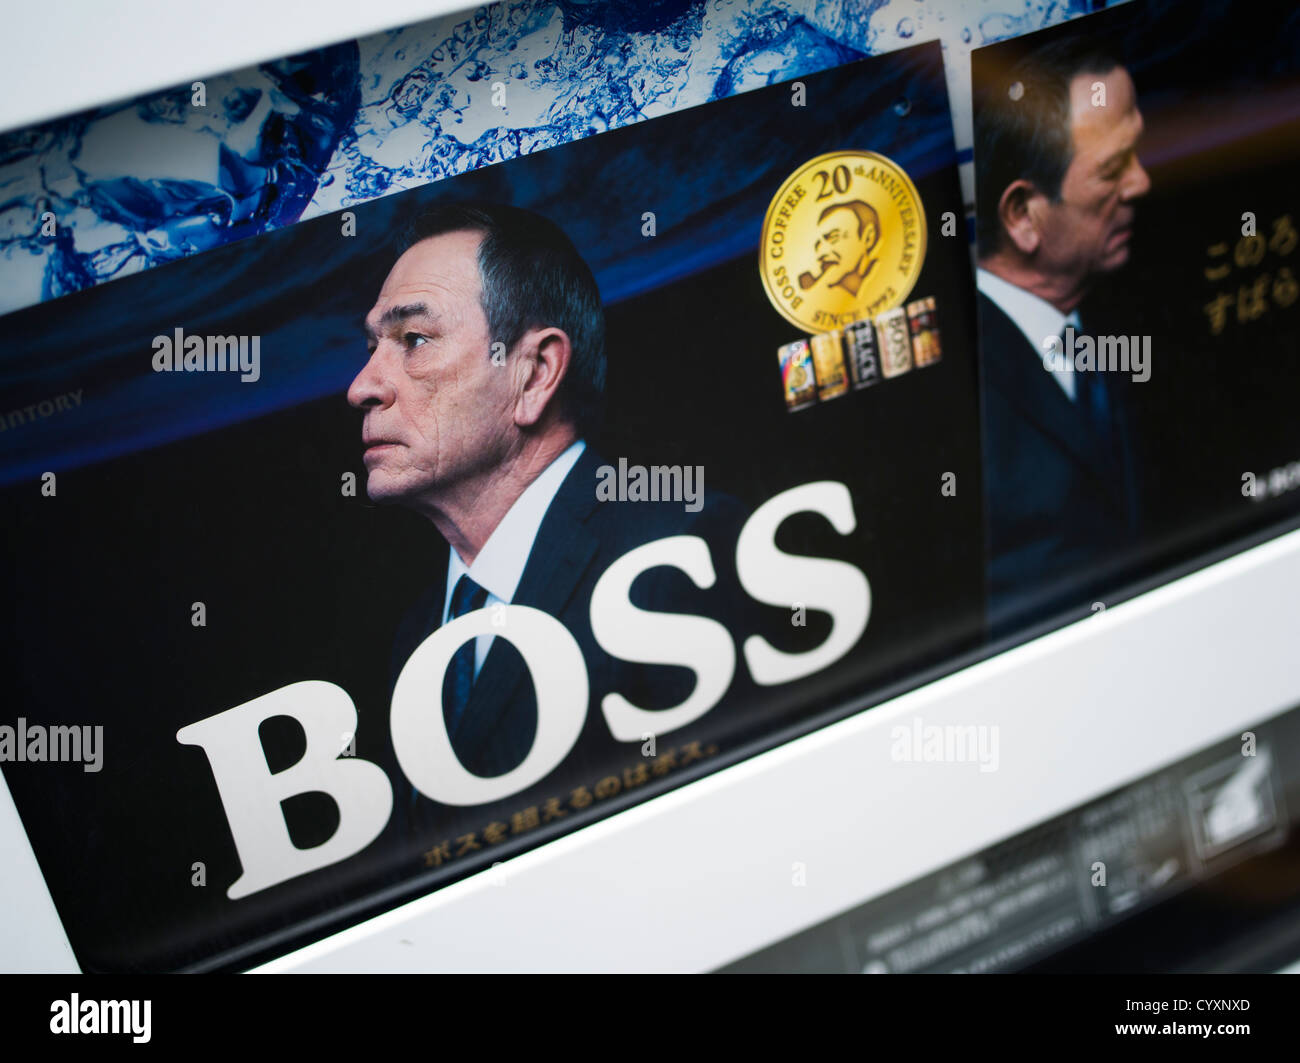 Patron de la publicité au Japon à l'aide de café / celebrity acteur Tommy Lee Jones Photo Stock